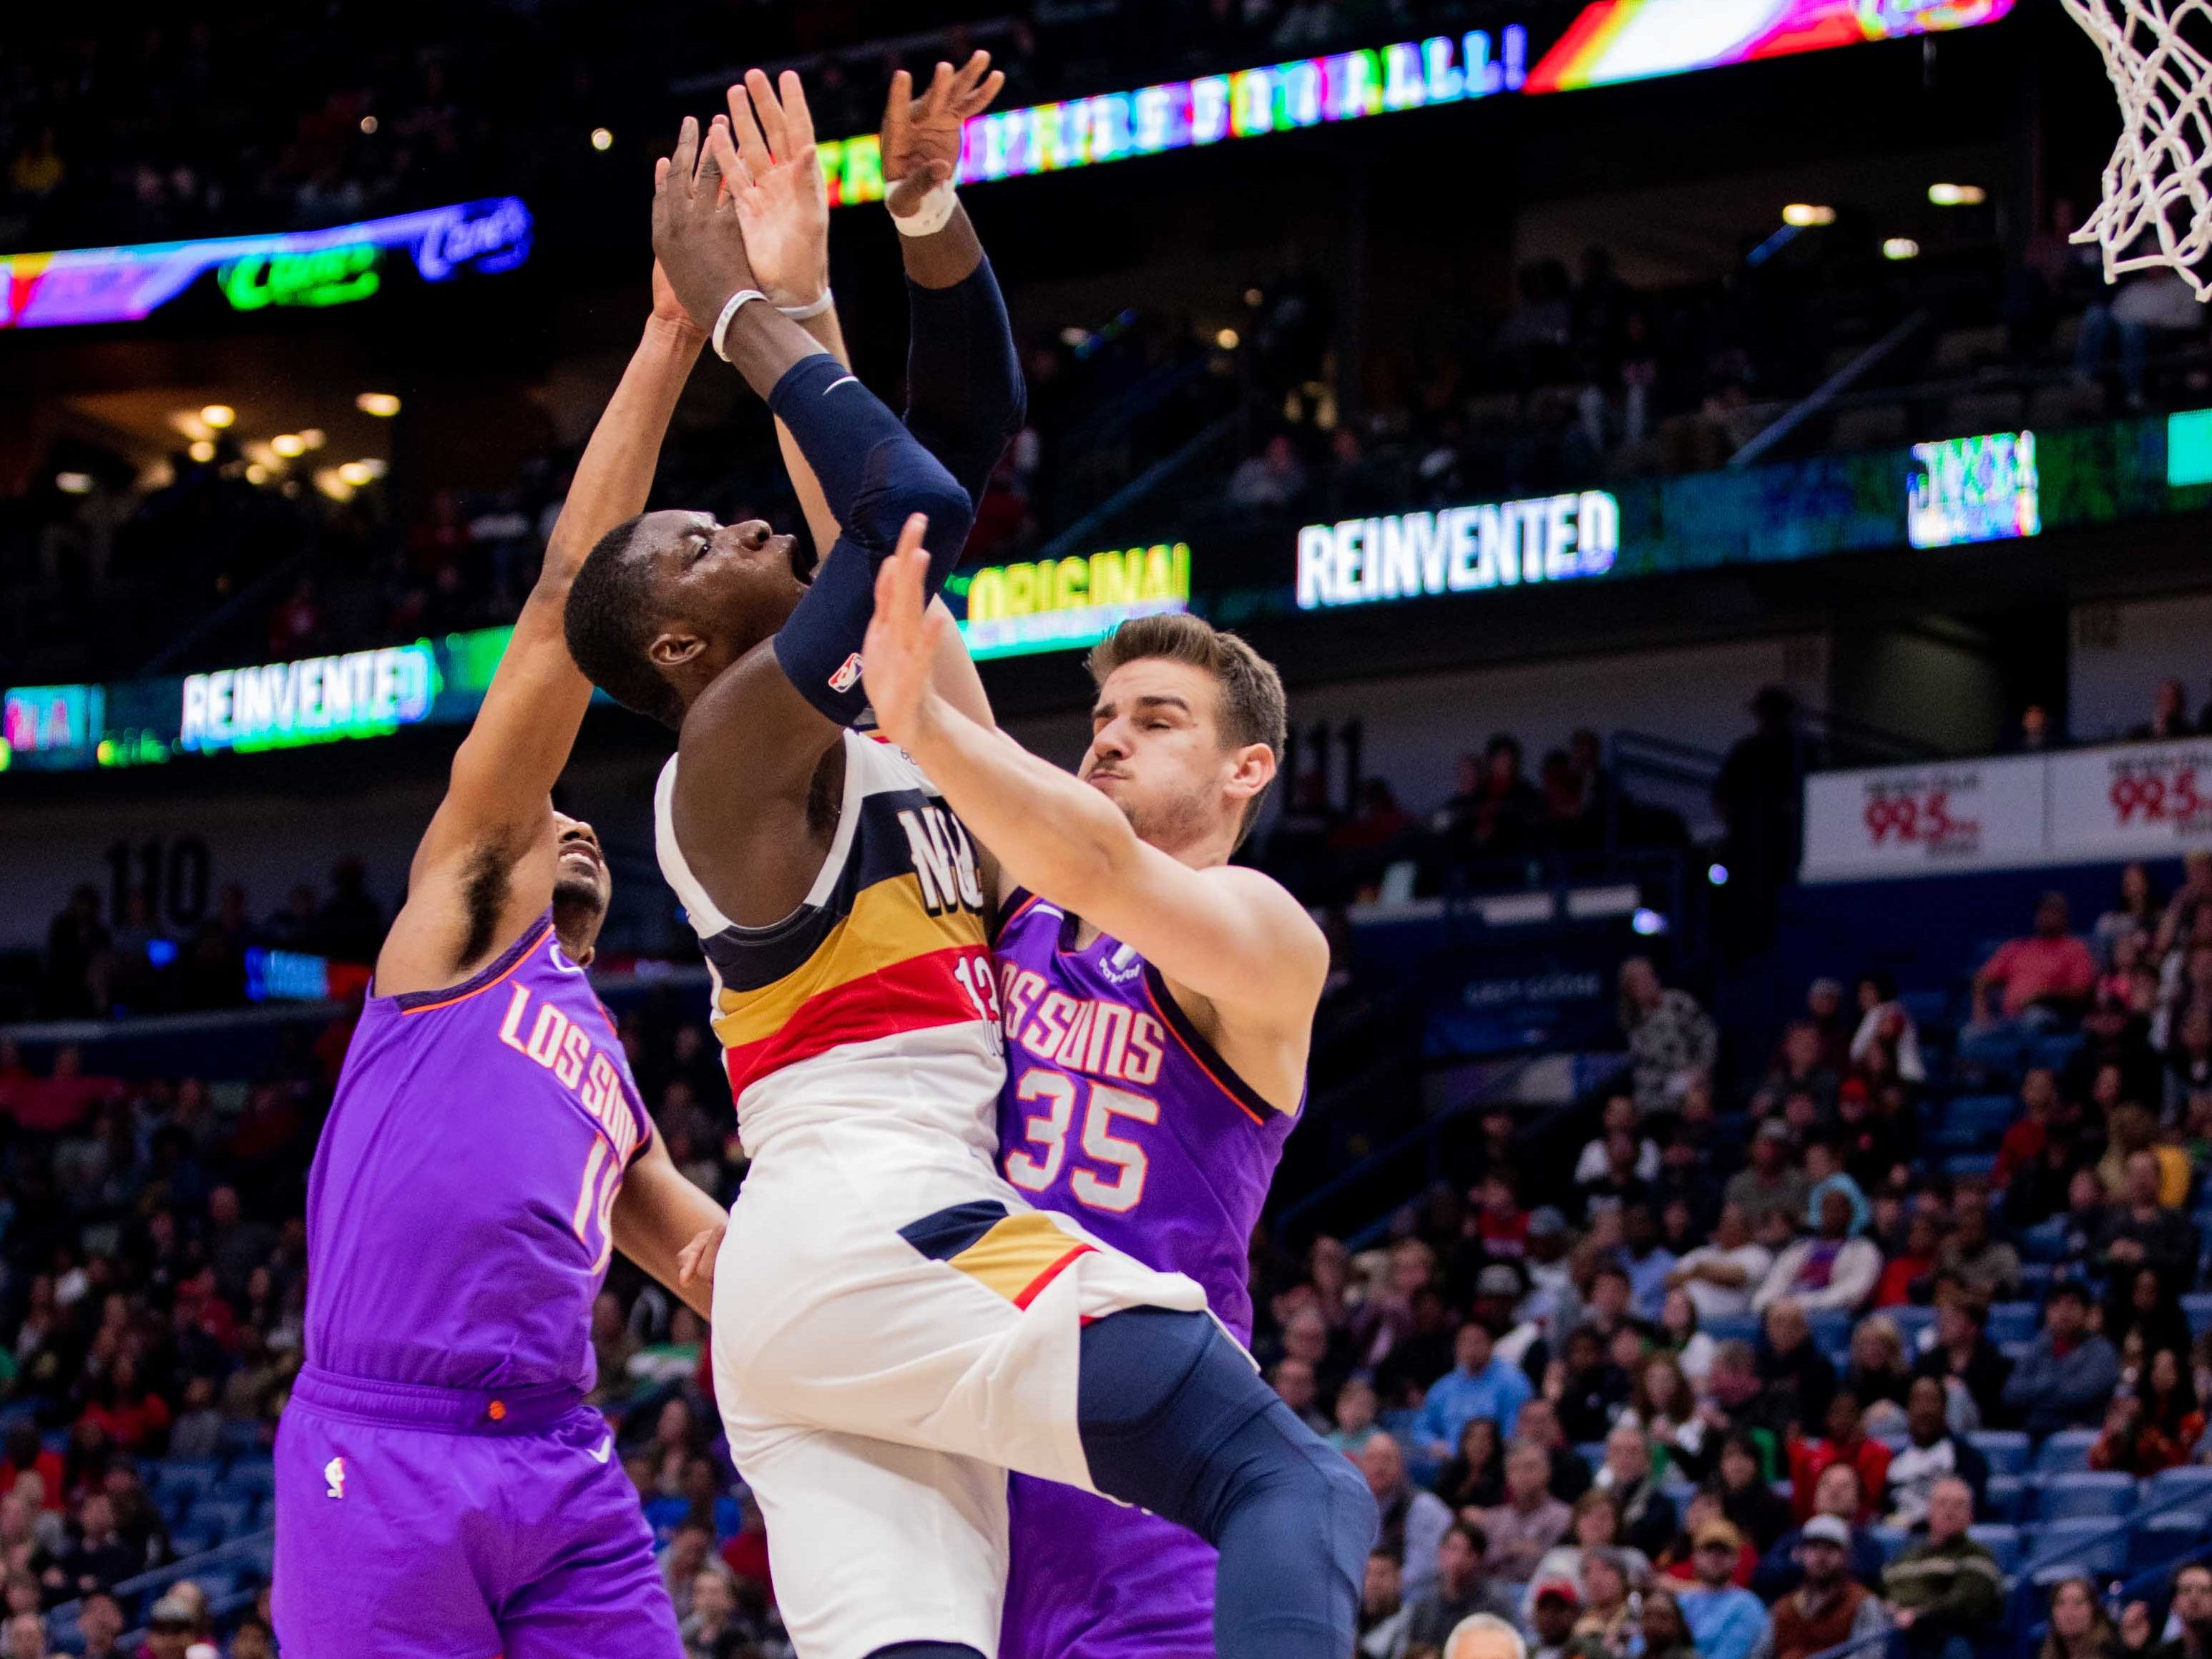 Mar 16, 2019; New Orleans, LA, USA; New Orleans Pelicans forward Cheick Diallo (13)vis fouled going to the basket by Phoenix Suns forward Dragan Bender (35) during the second half at Smoothie King Center.